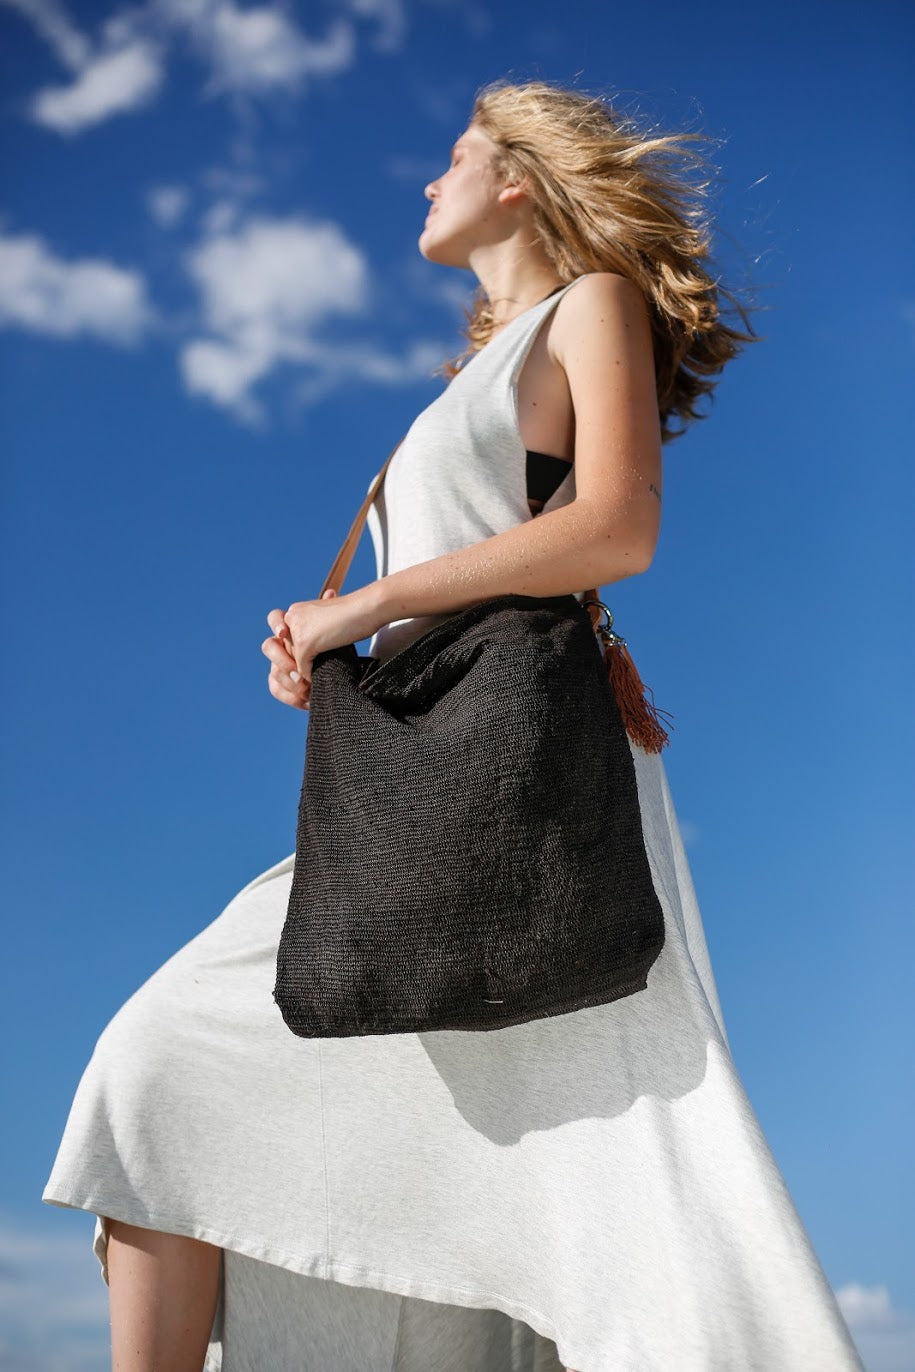 Woman holding Black Chaguar Purse with Brown Leather Strap.